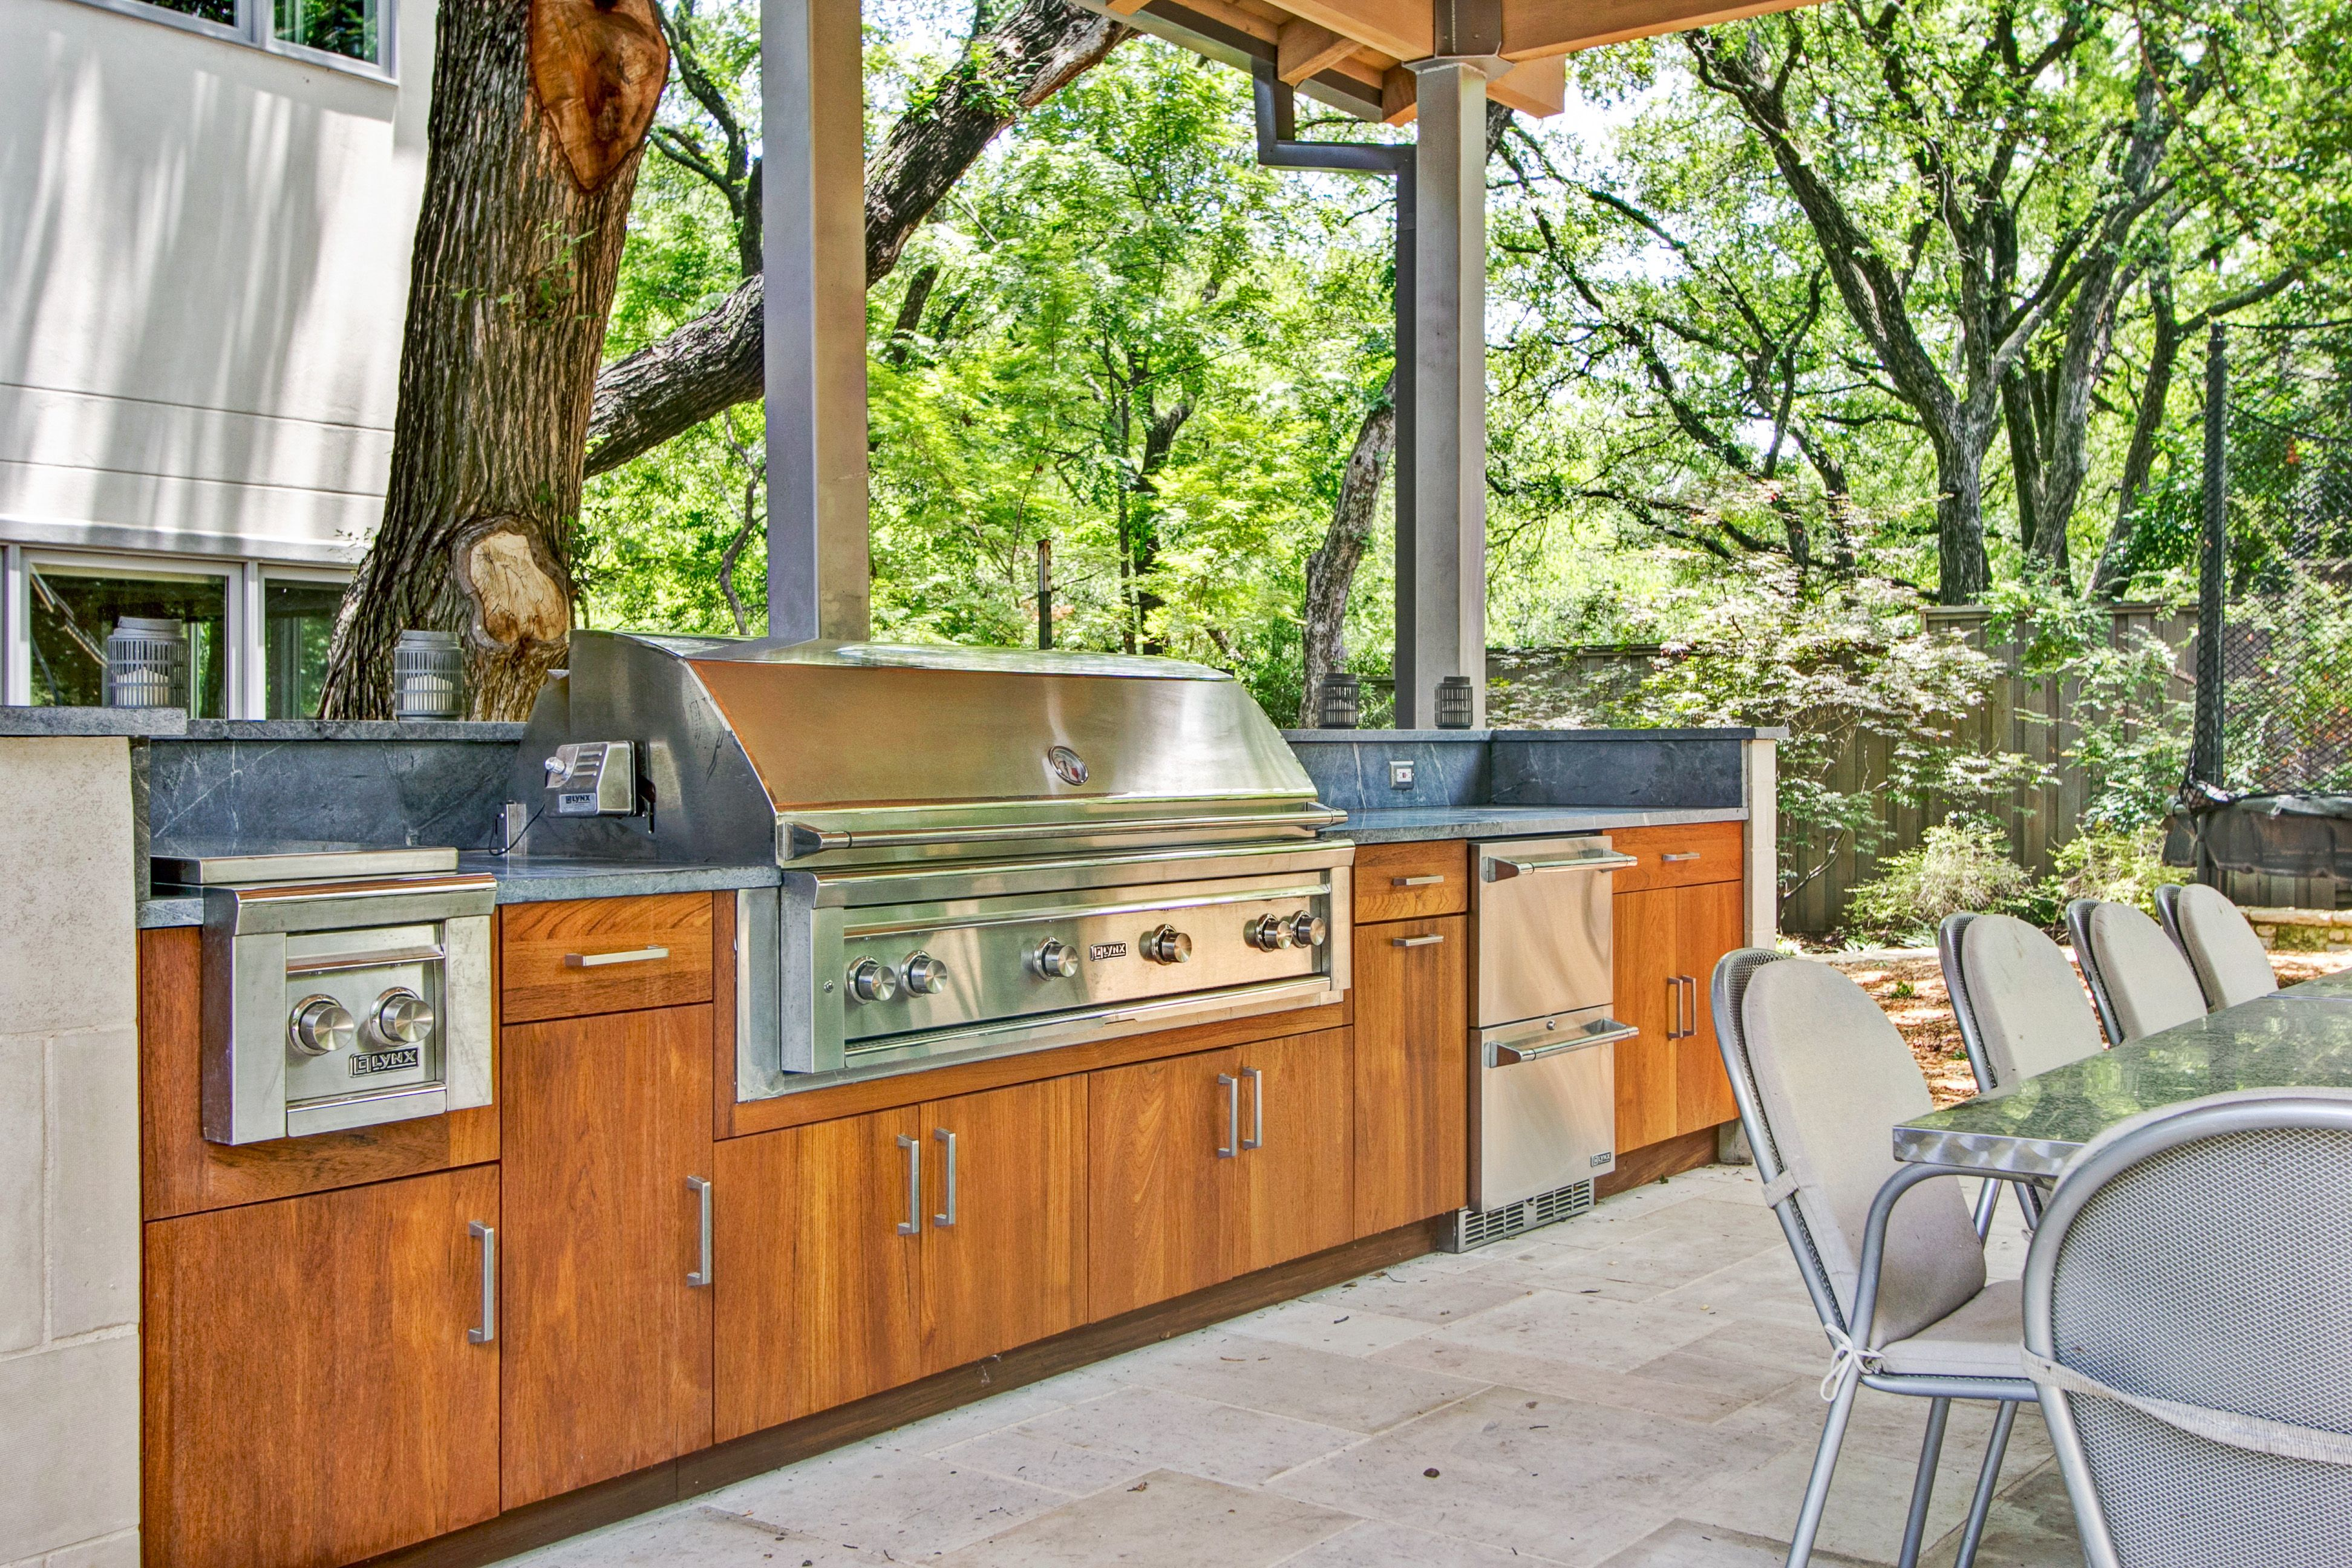 Pin On Outdoor Kitchens And Living Spaces